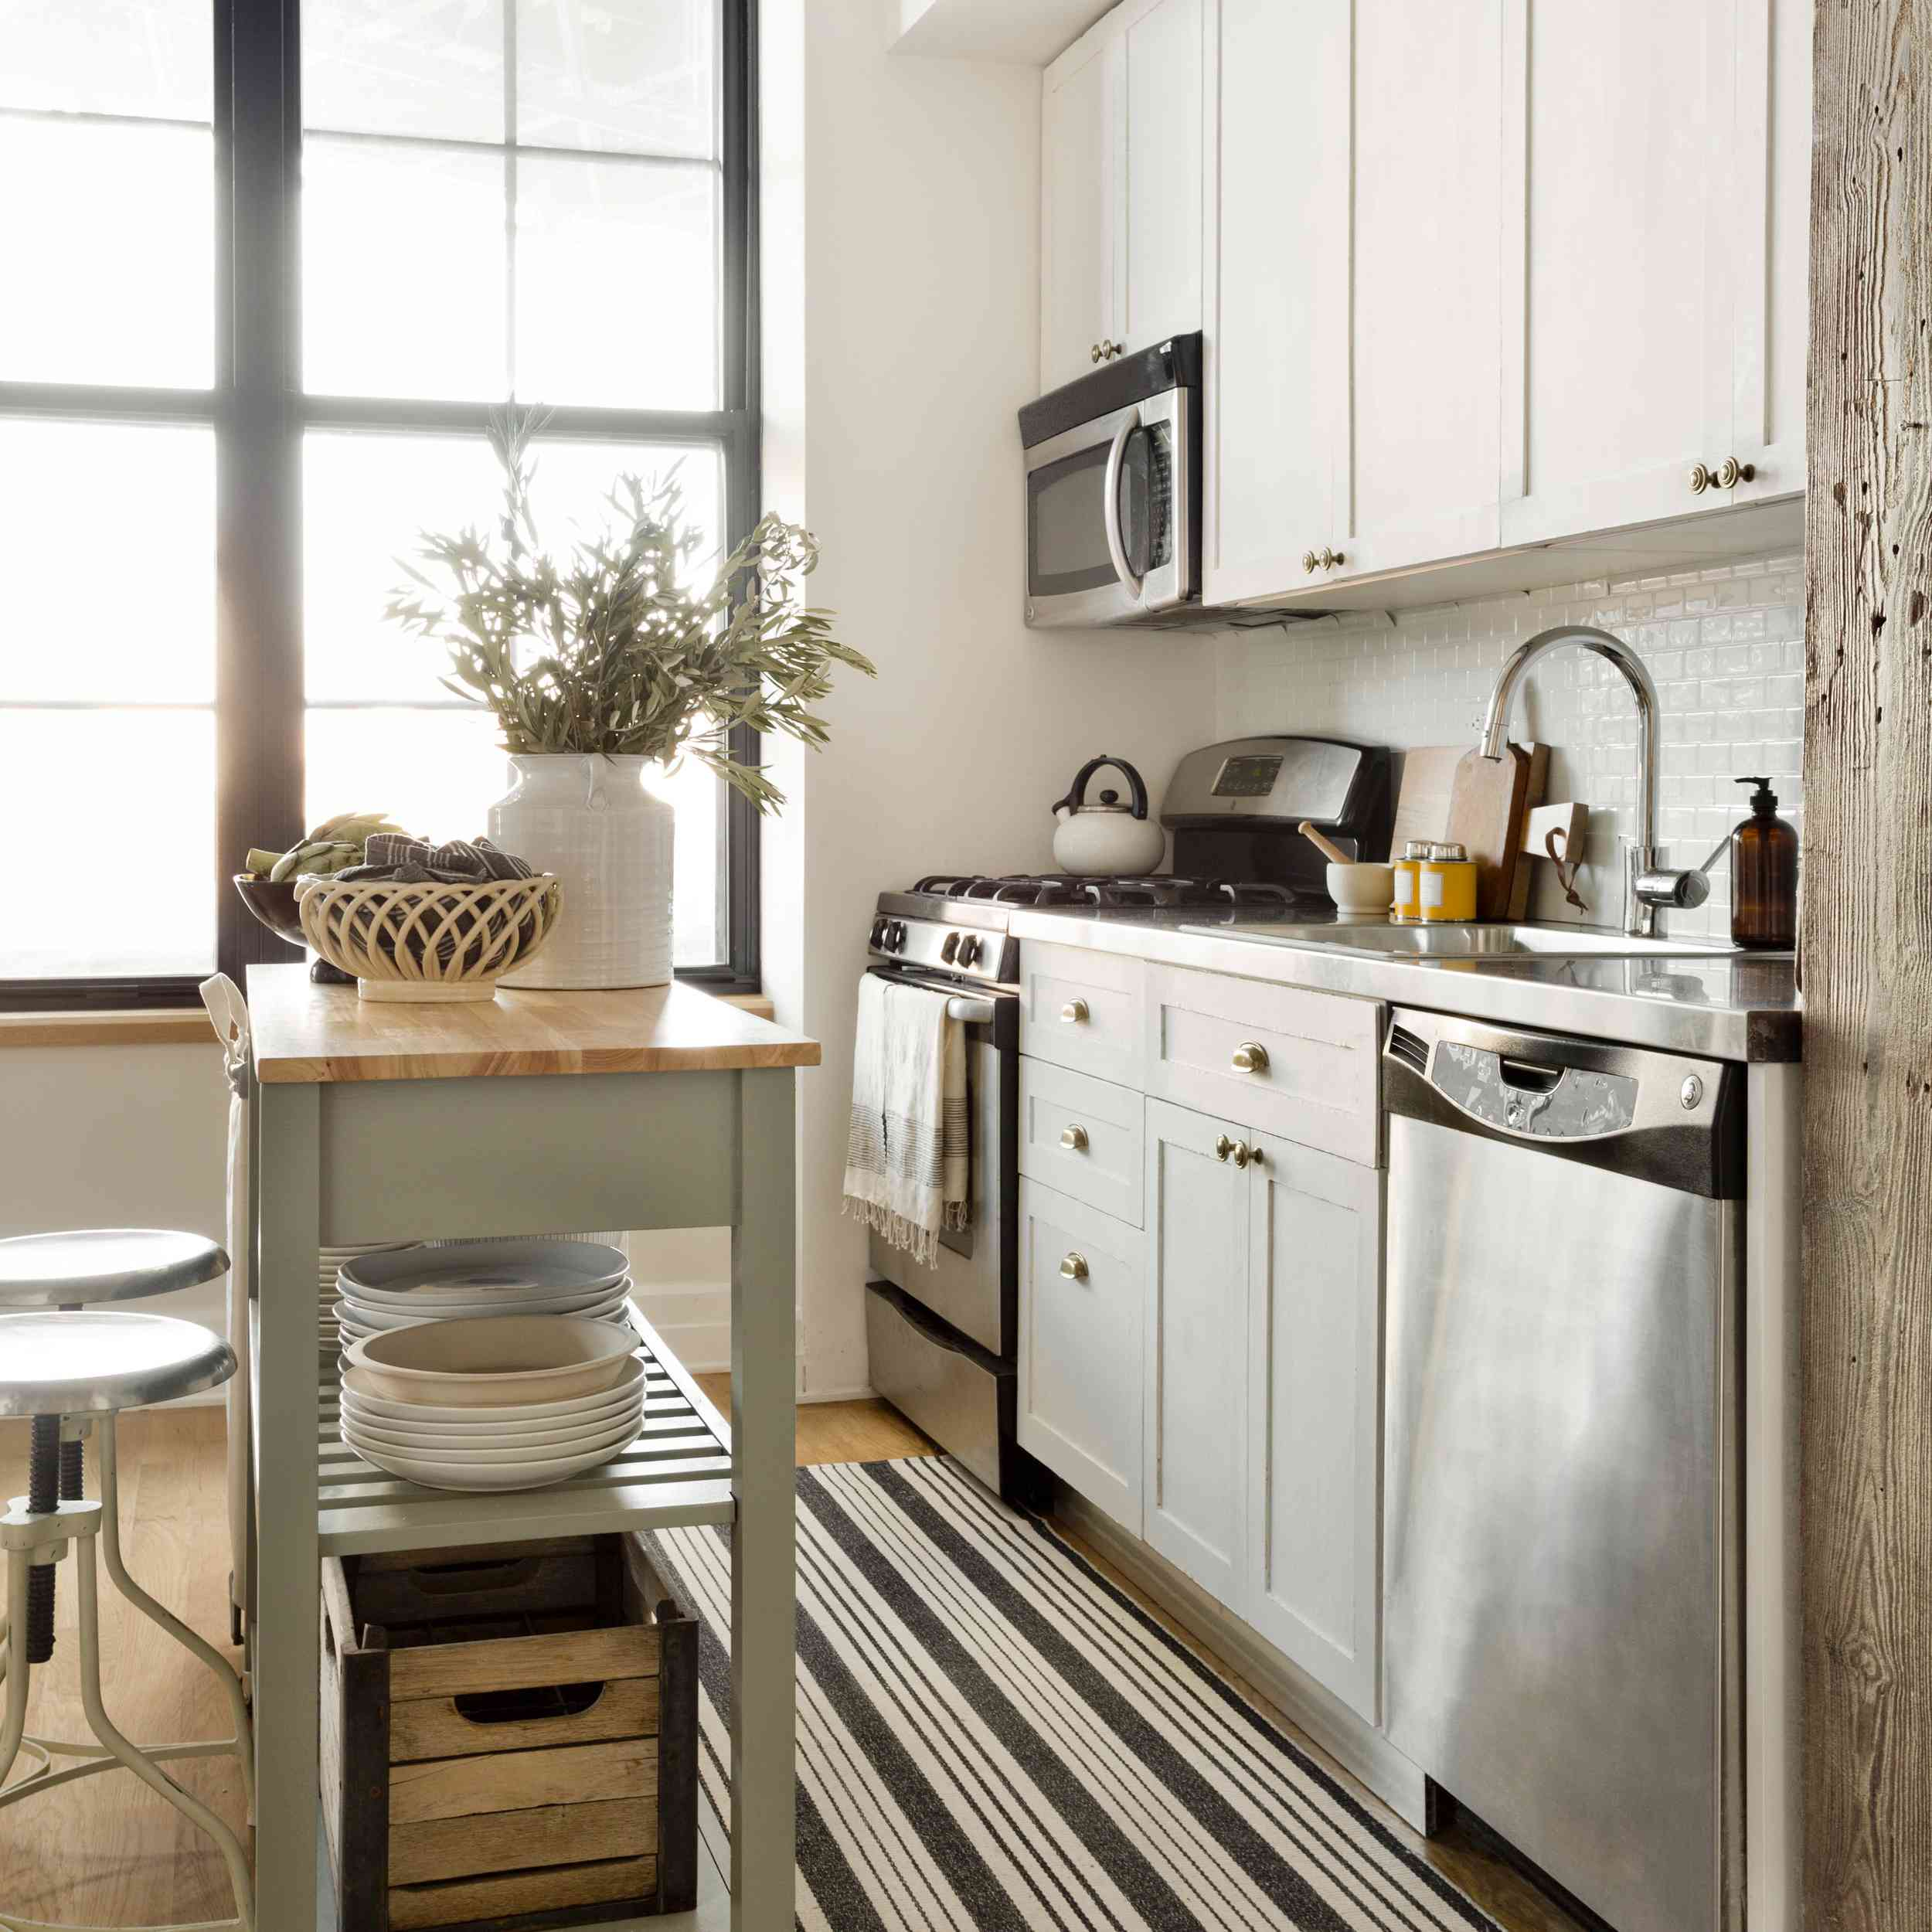 Apartment kitchen with rolling island cart